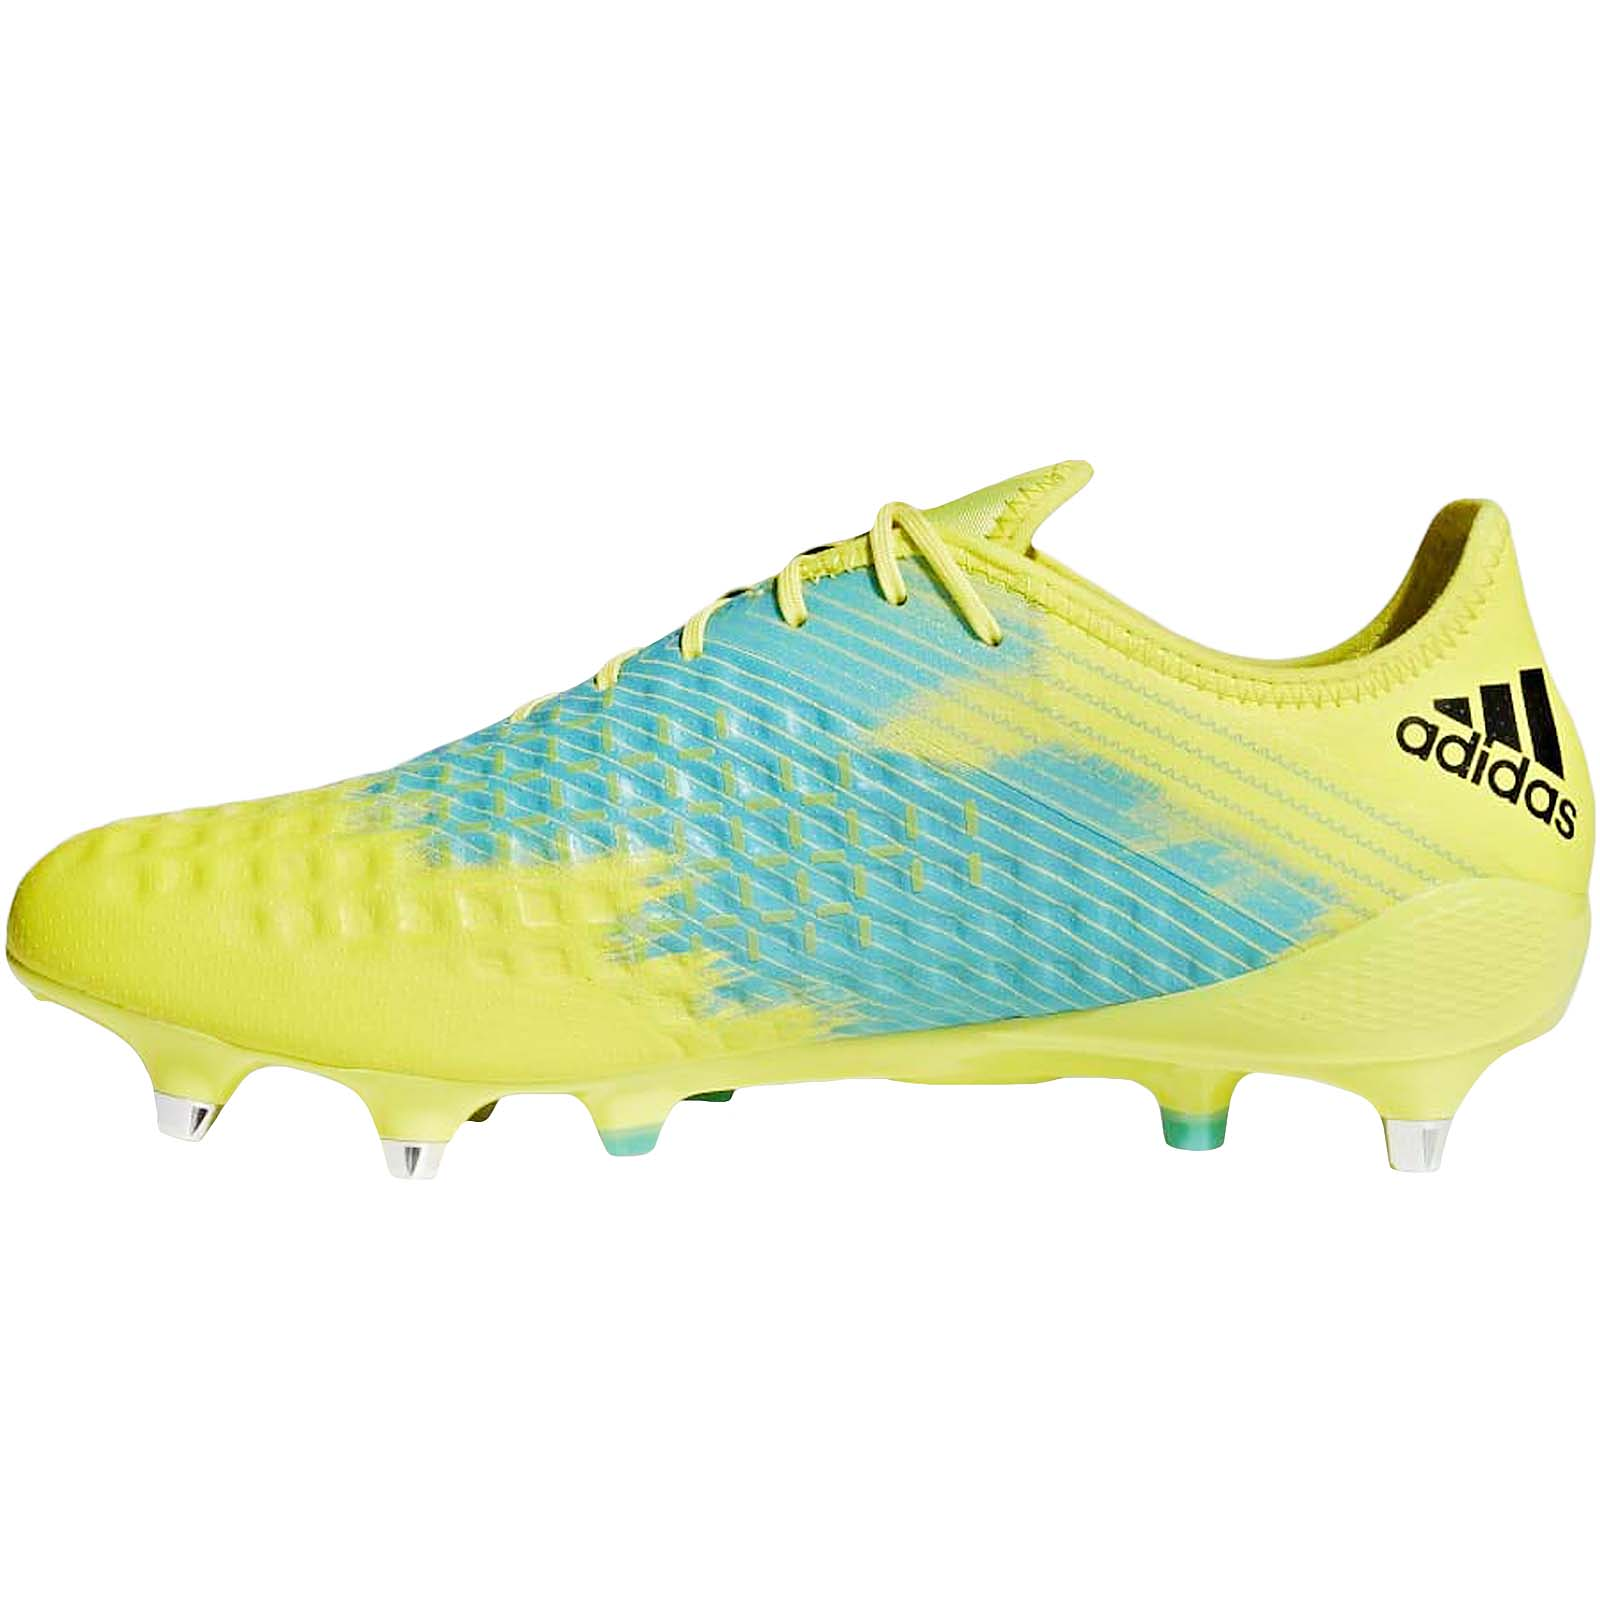 adidas-Performance-Mens-Predator-Malice-Control-Soft-Ground-Rugby-Boots thumbnail 10